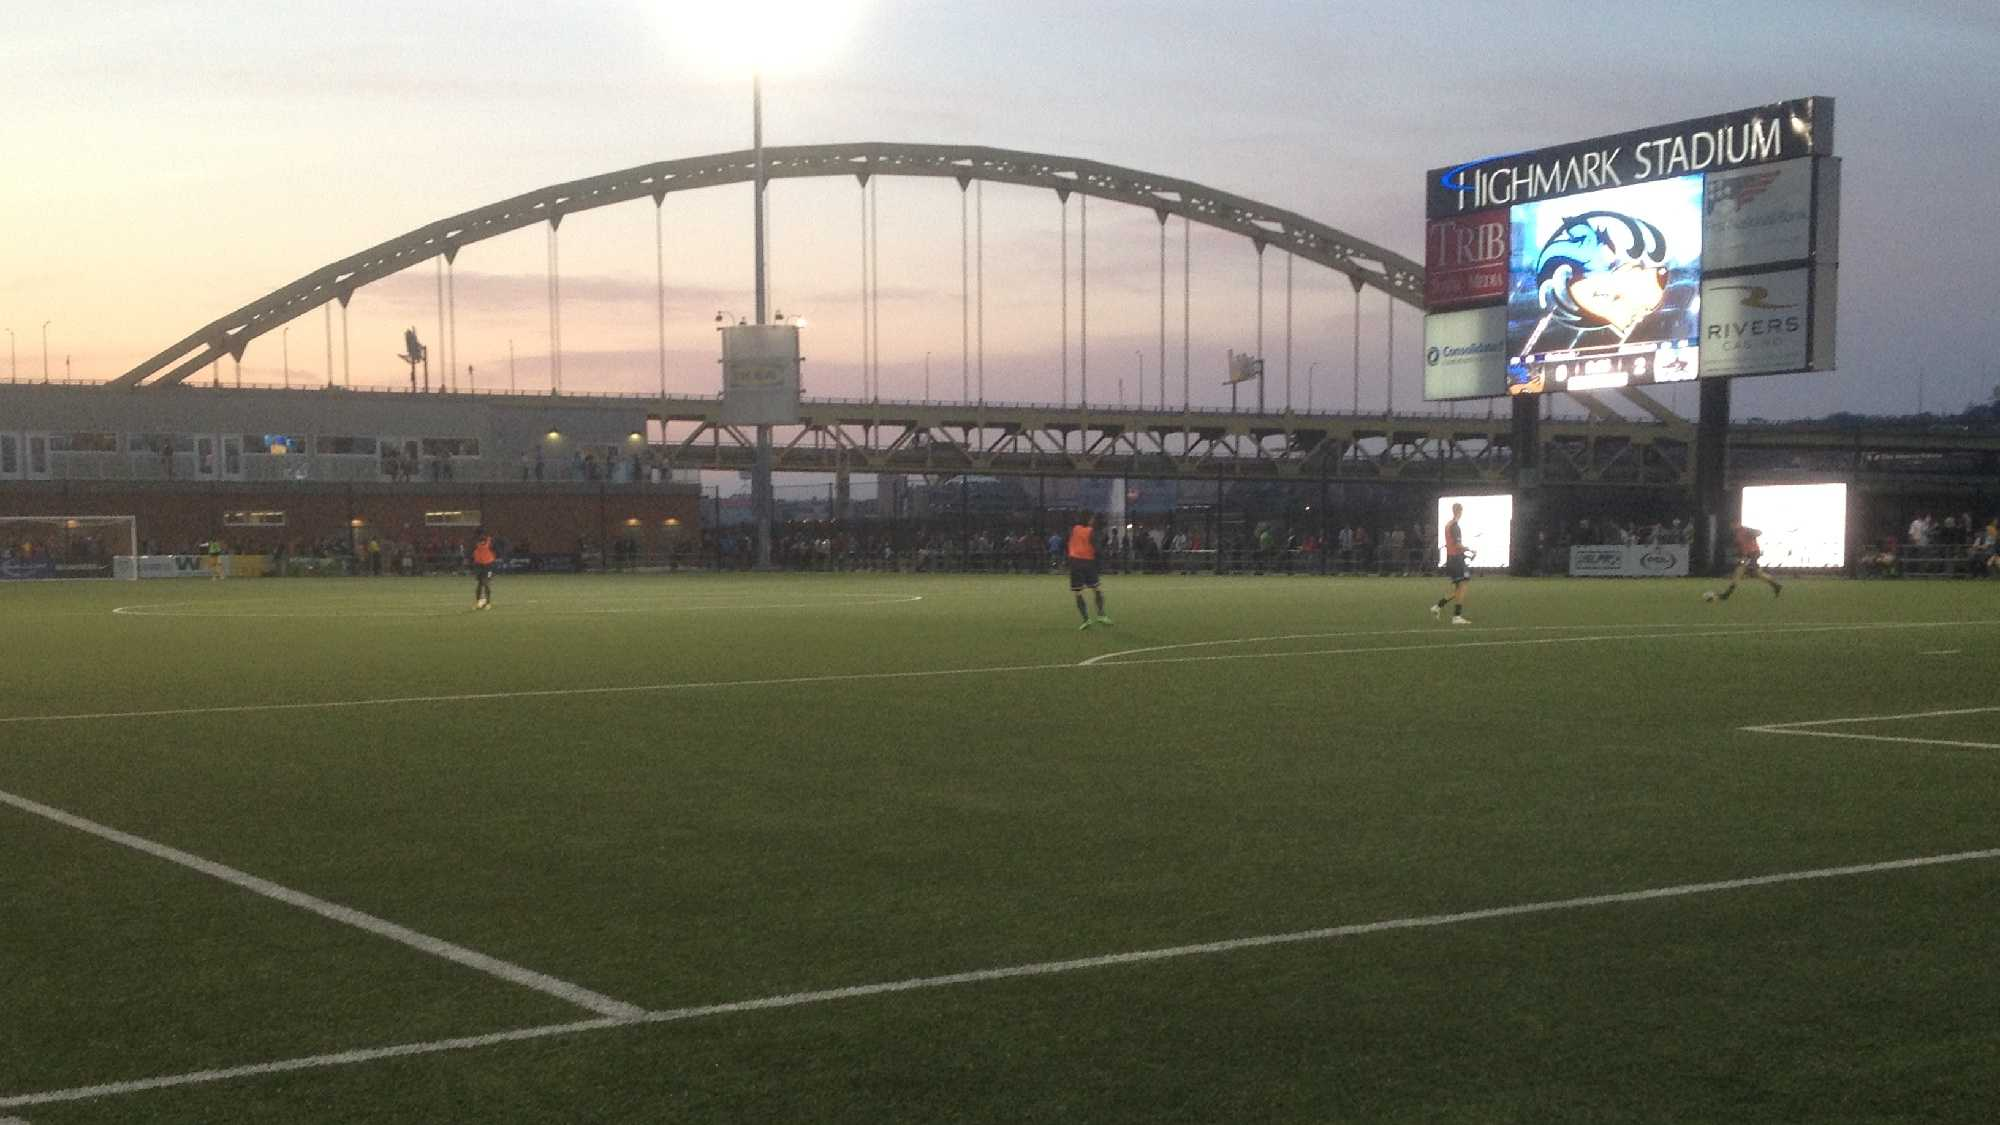 Highmark Stadium, home of Pittsburgh Riverhounds soccer.